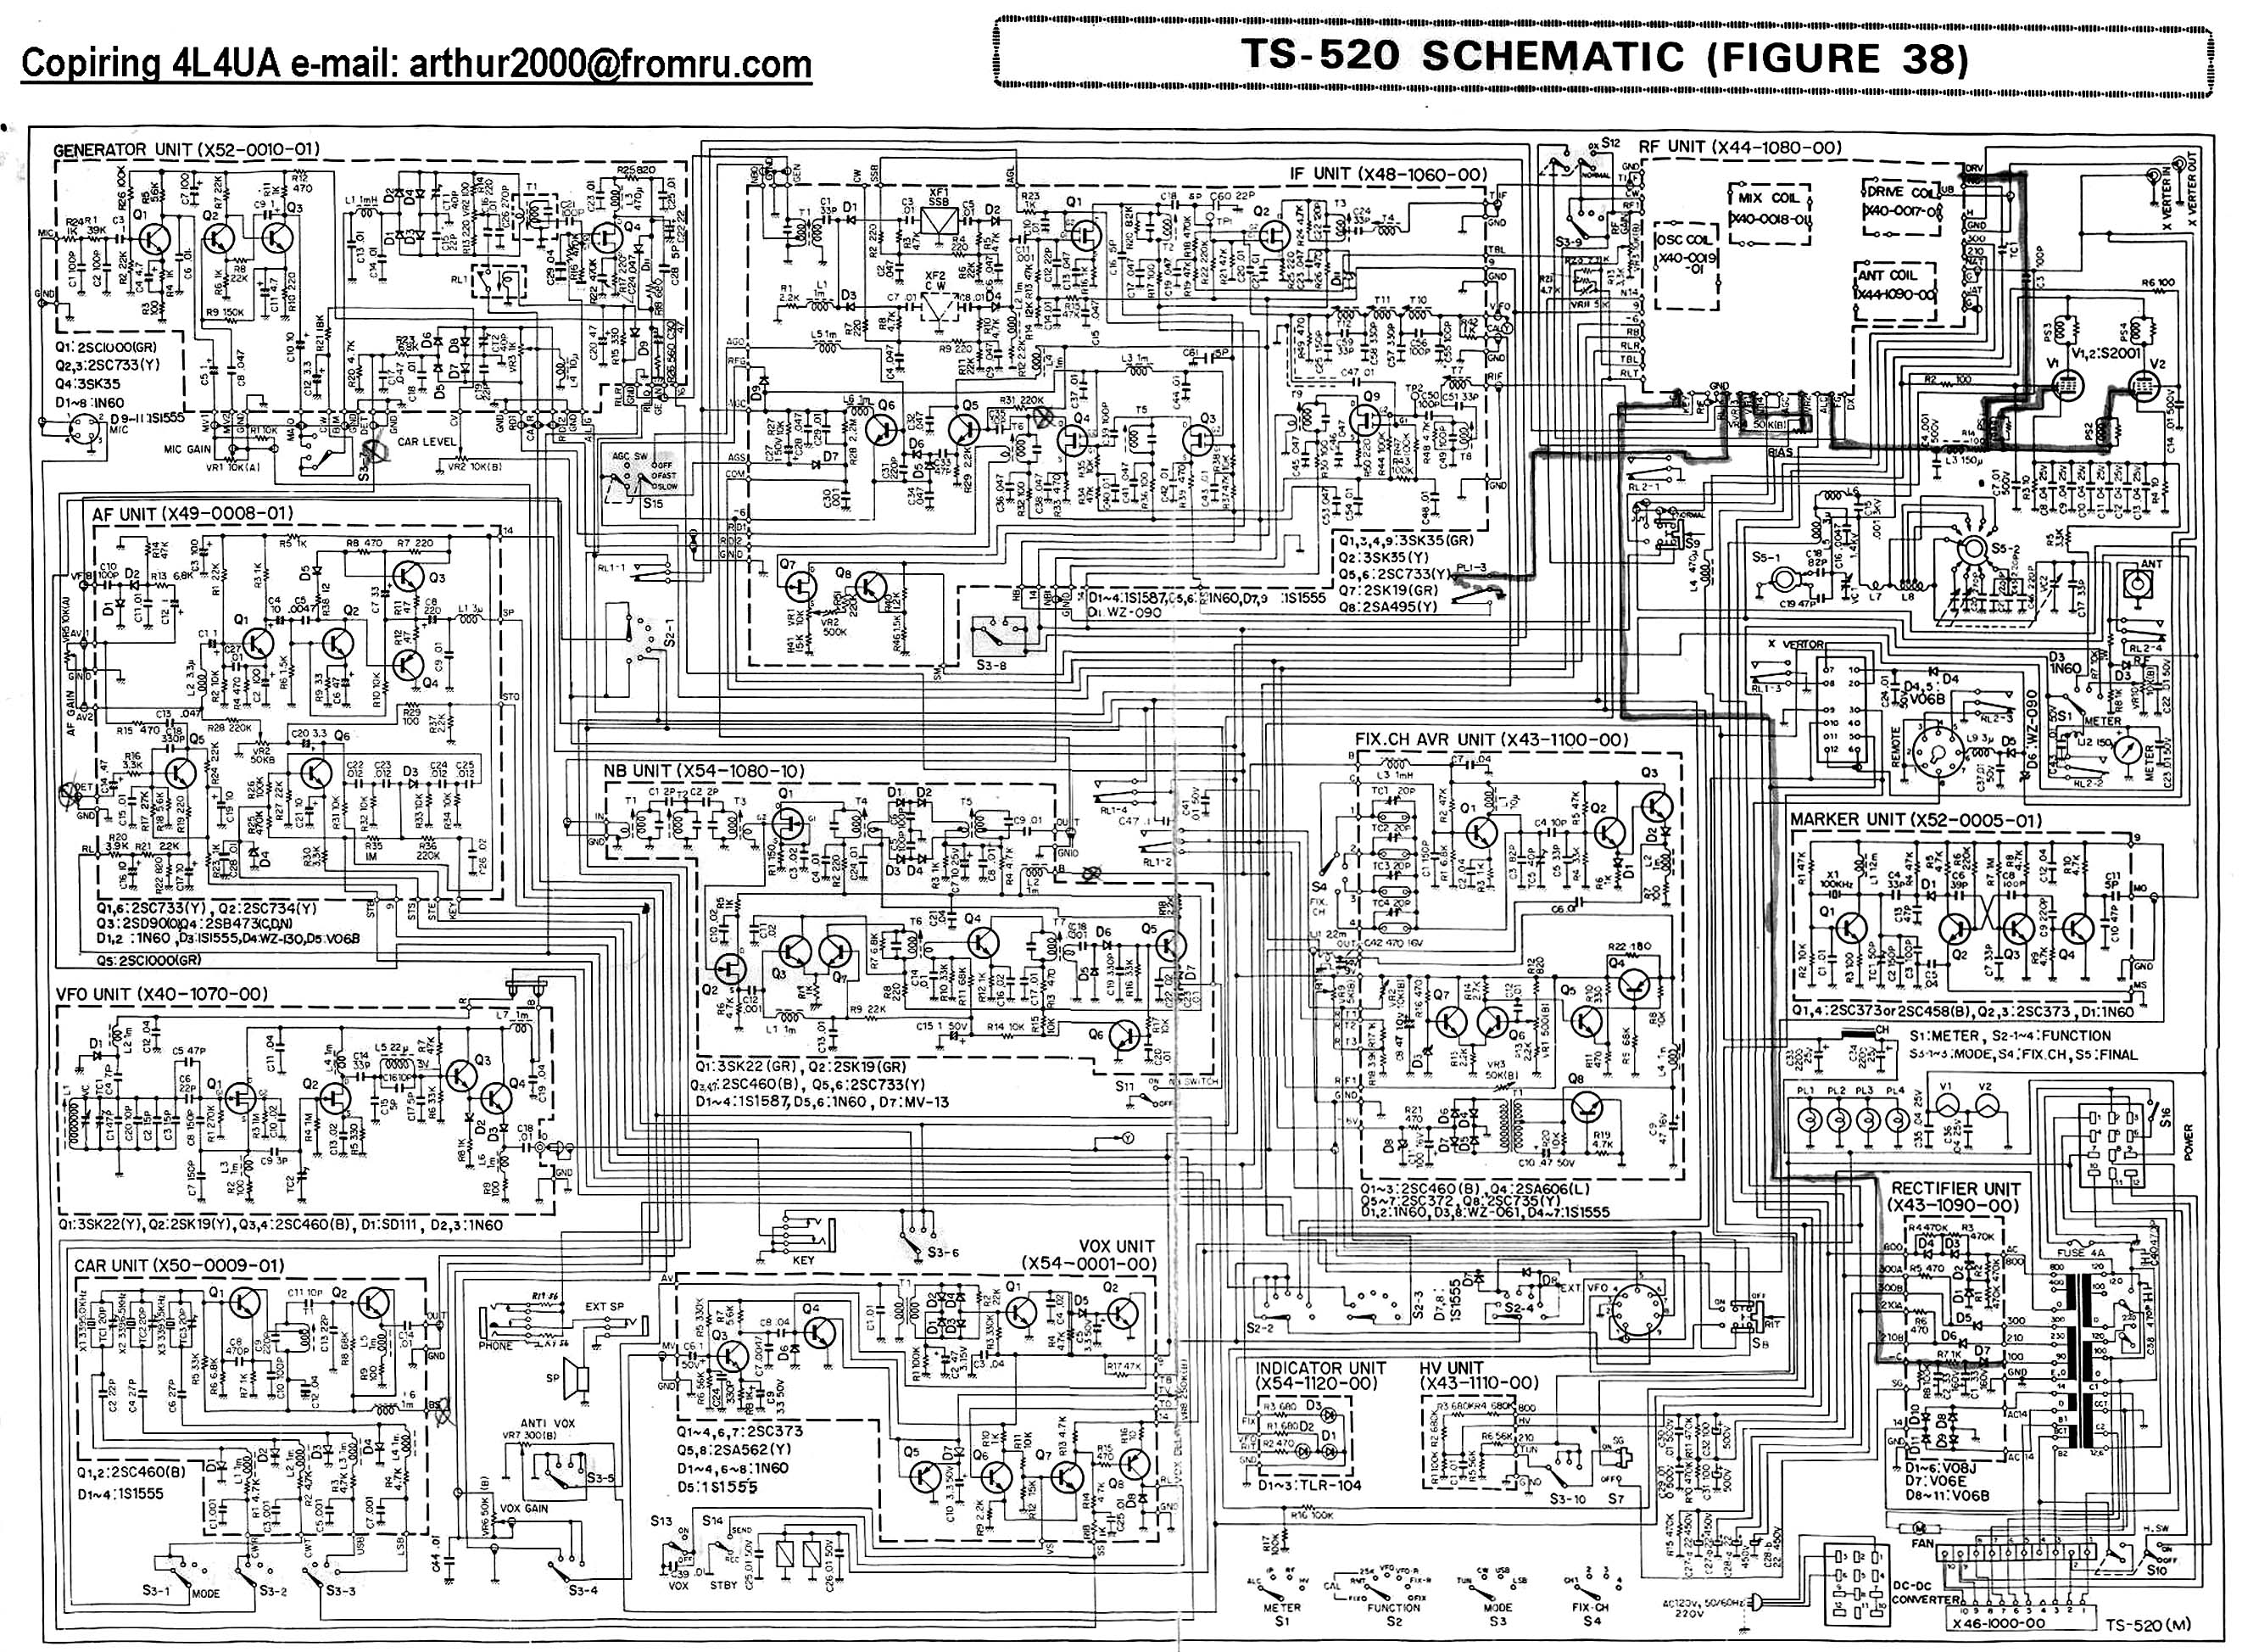 Kenwood ddx7015 wiring diagram sony cdx gt66upw wiring diagram wiring ddx7015 diagram harness kenwood kenwood ddx374bt wiring kenwood ts 520 schema wiring ddx7015 diagram harness asfbconference2016 Gallery